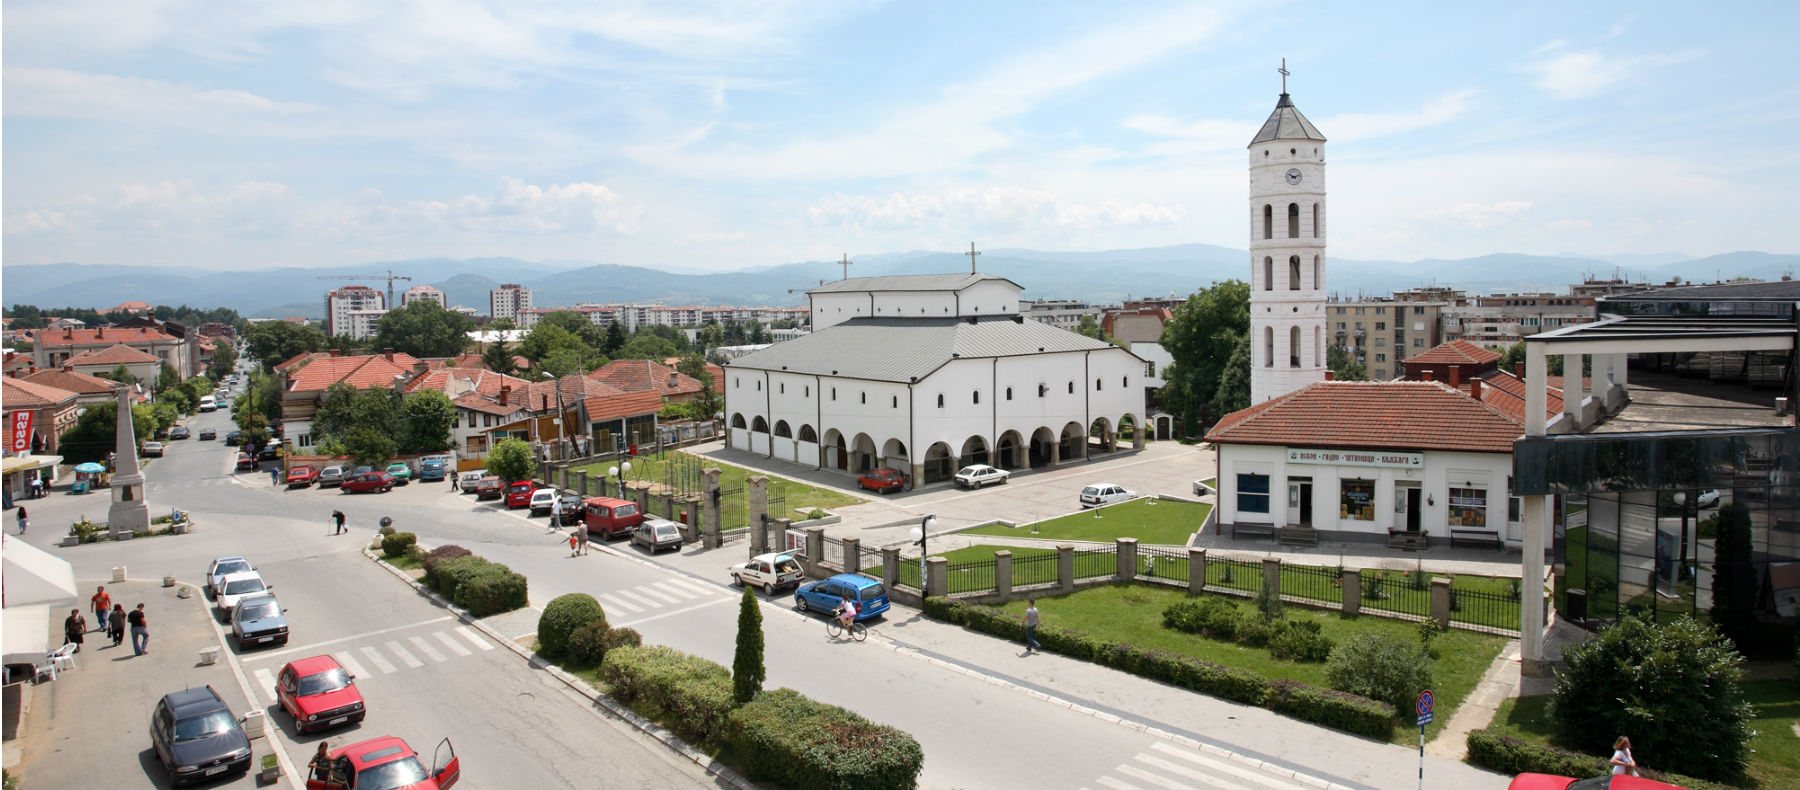 Contact Capital One >> Vranje, a town at the crossroads of historical paths - Serbia.com